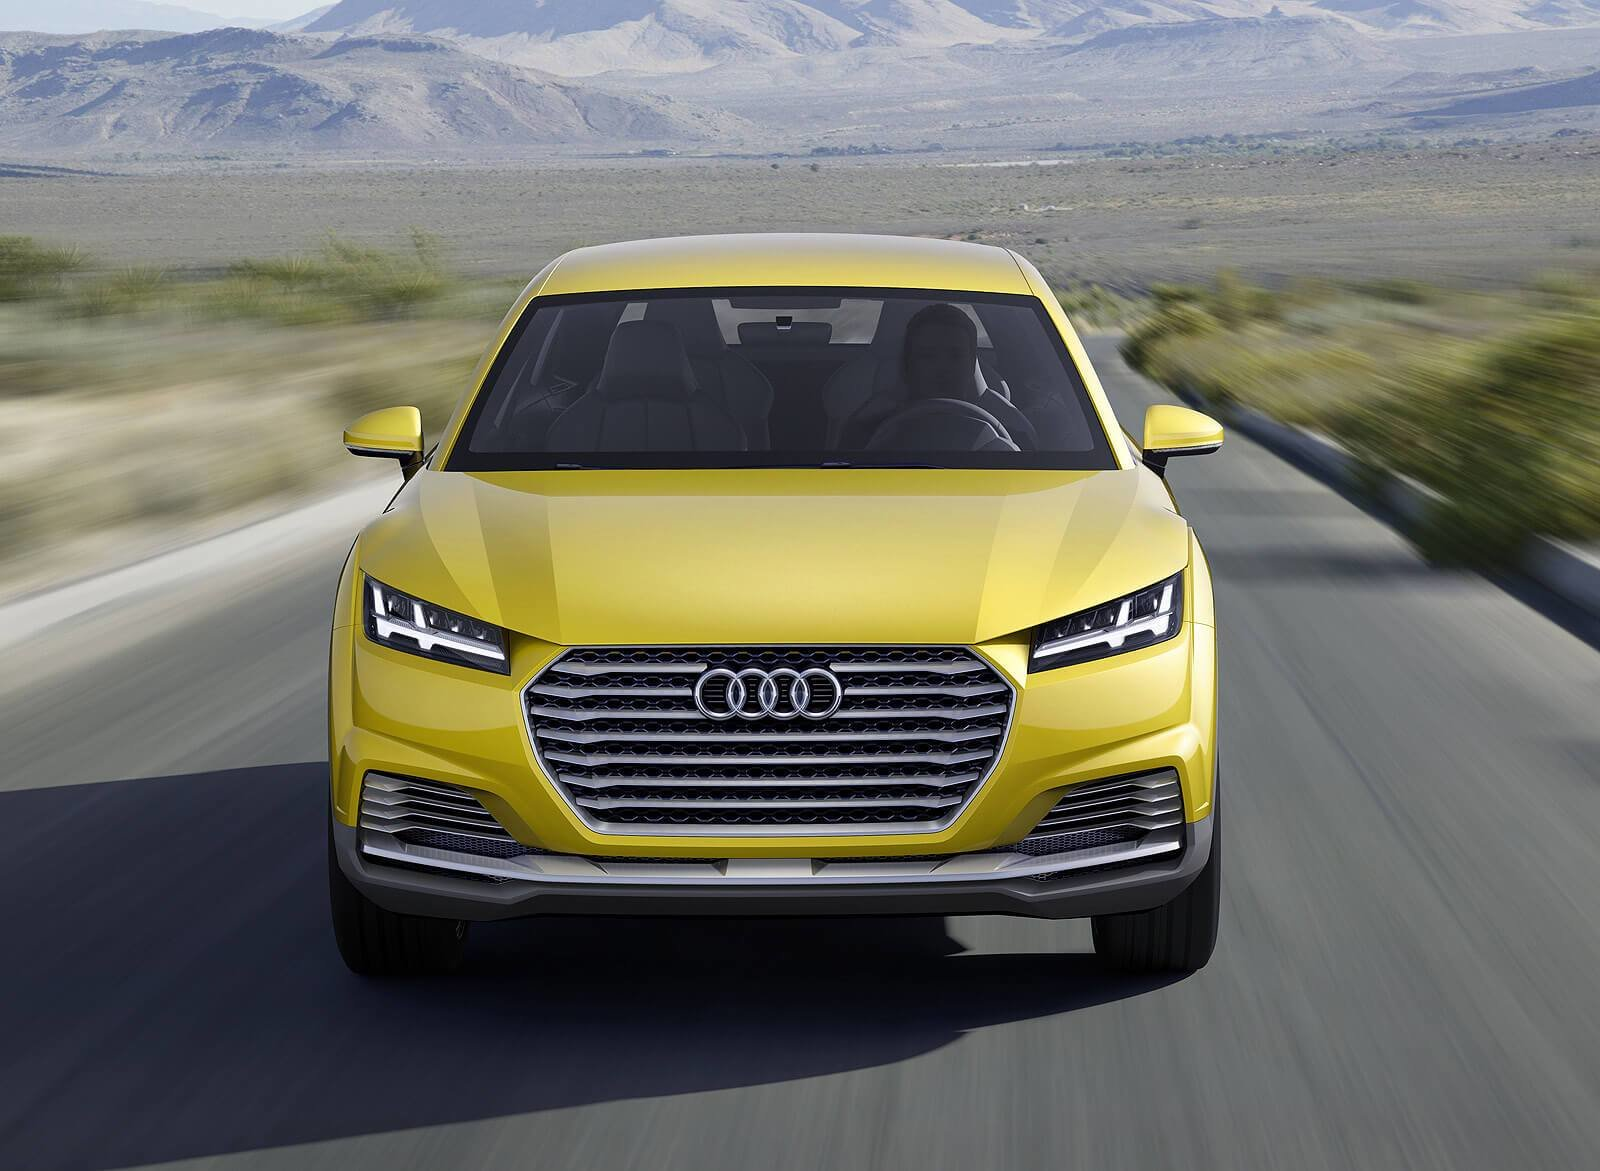 New Audi Audi Future Cars 2019 2020 Audi Future Cars 2019 On This Month